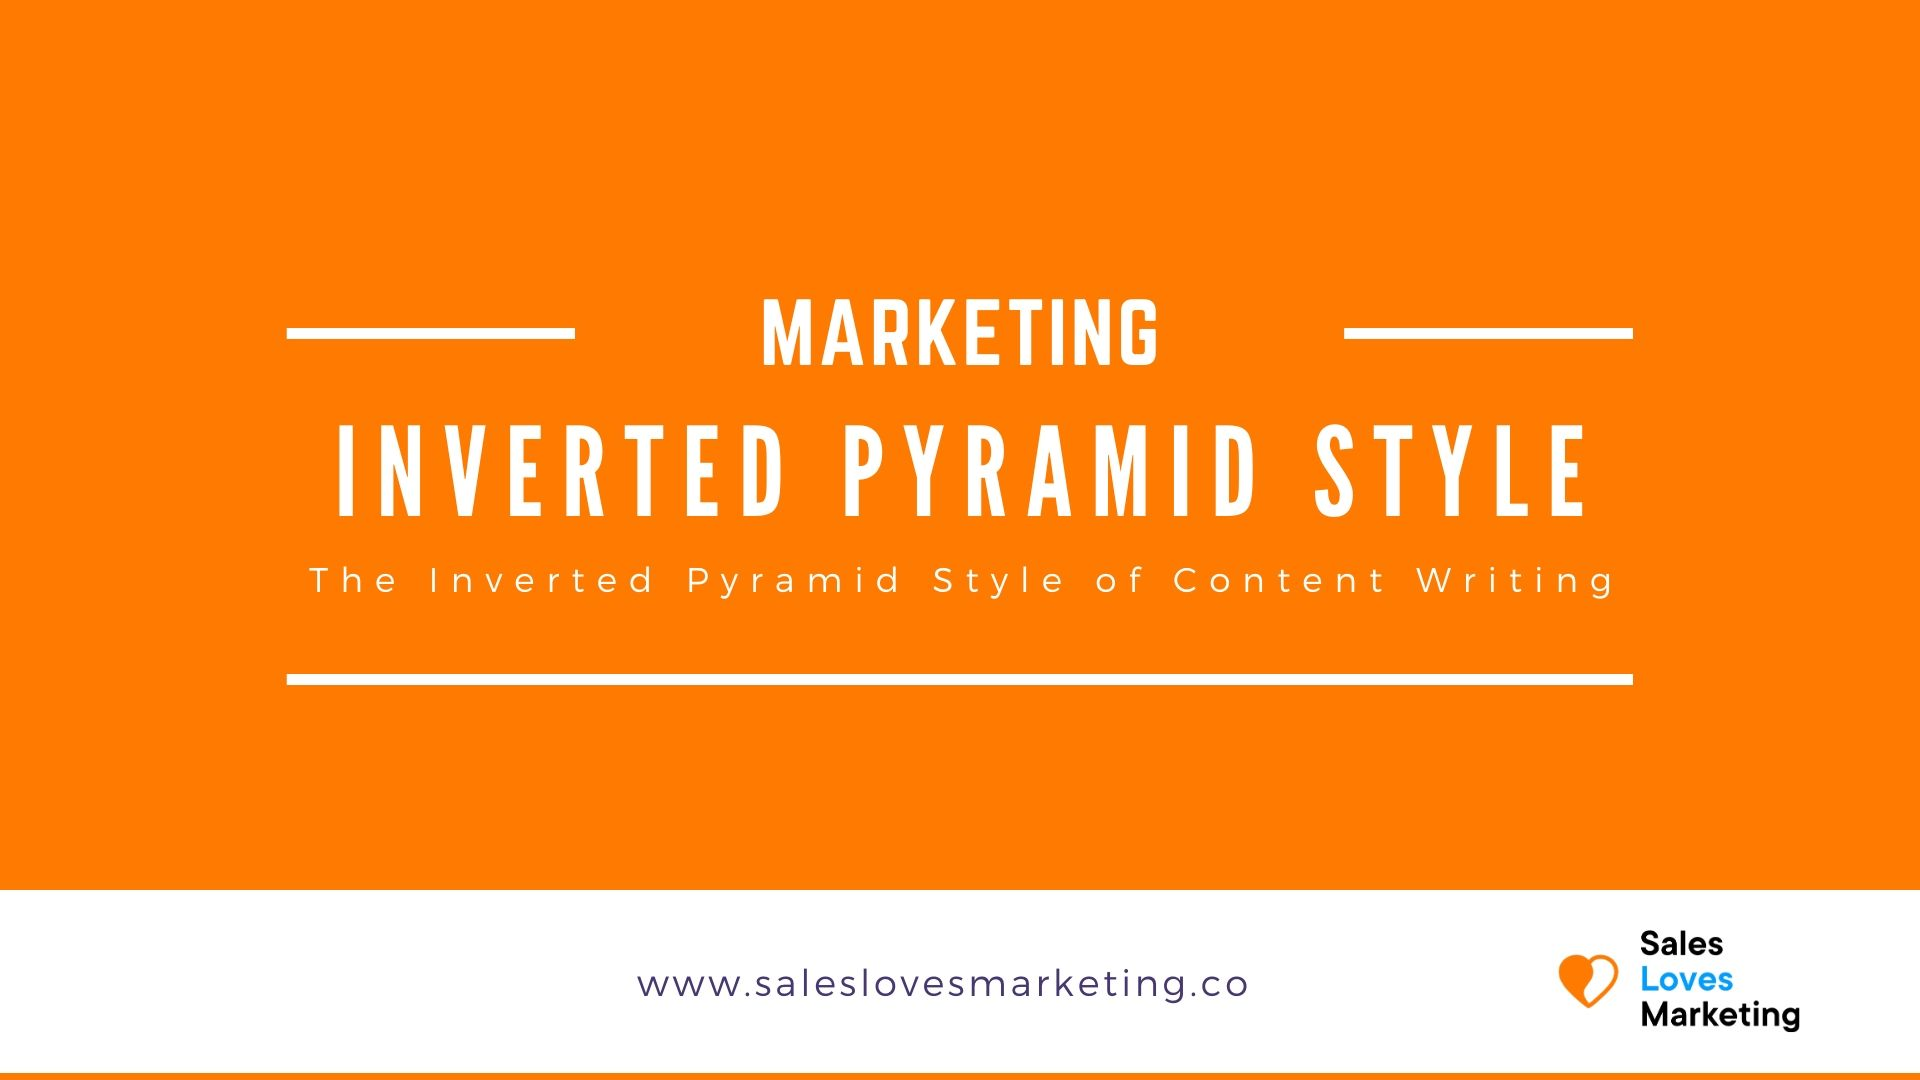 A guide on what the inverted pyramid style of writing is and how you can start using it as well